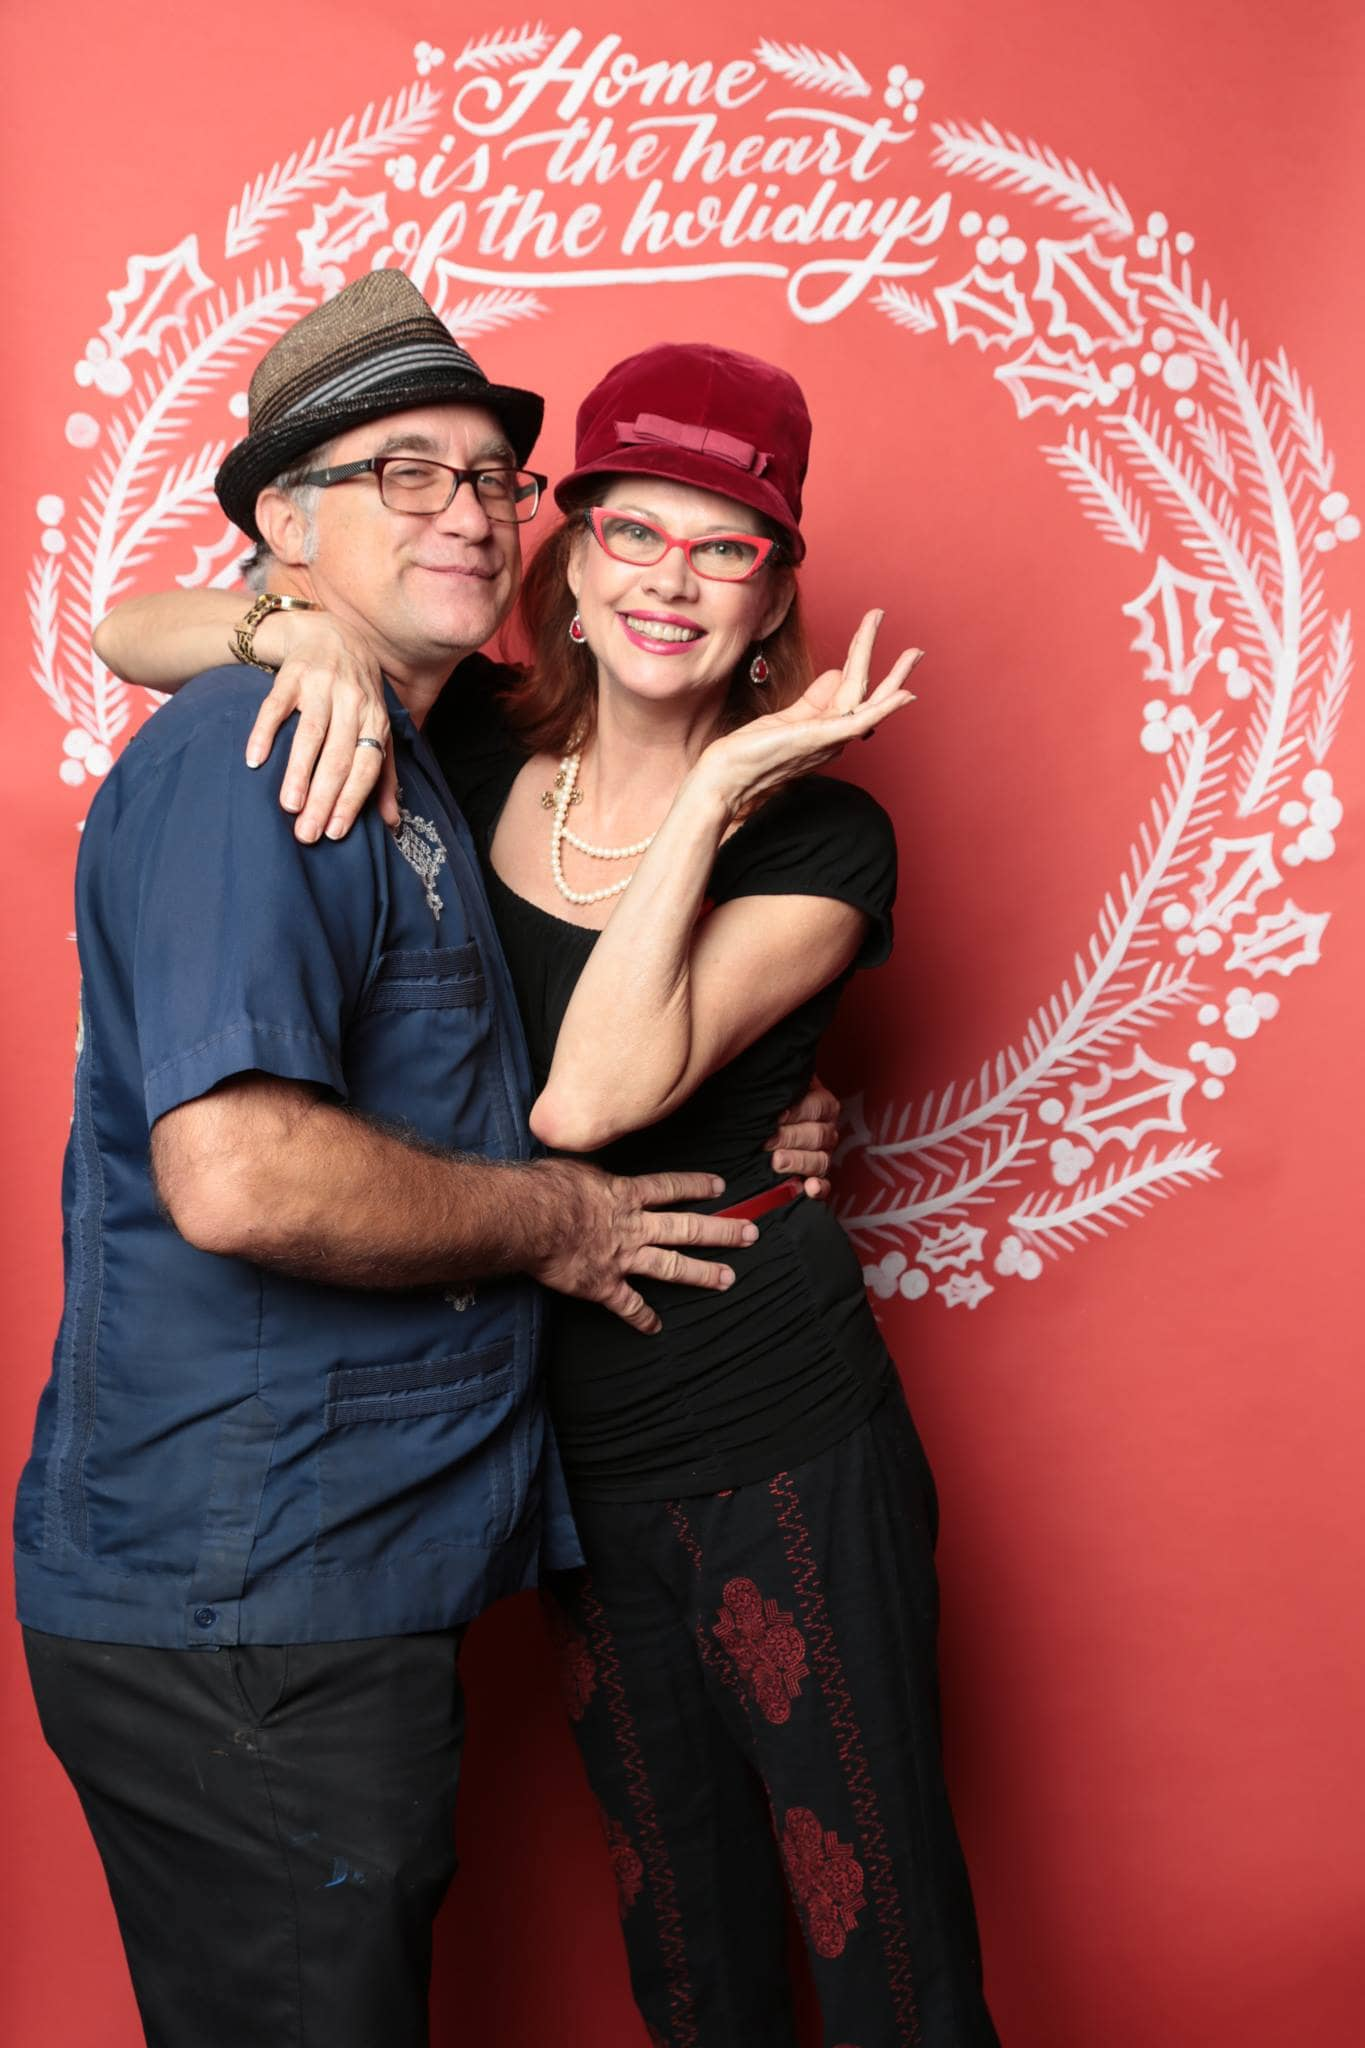 Hand lettered holiday photo booth backdrop by Hillery Powers